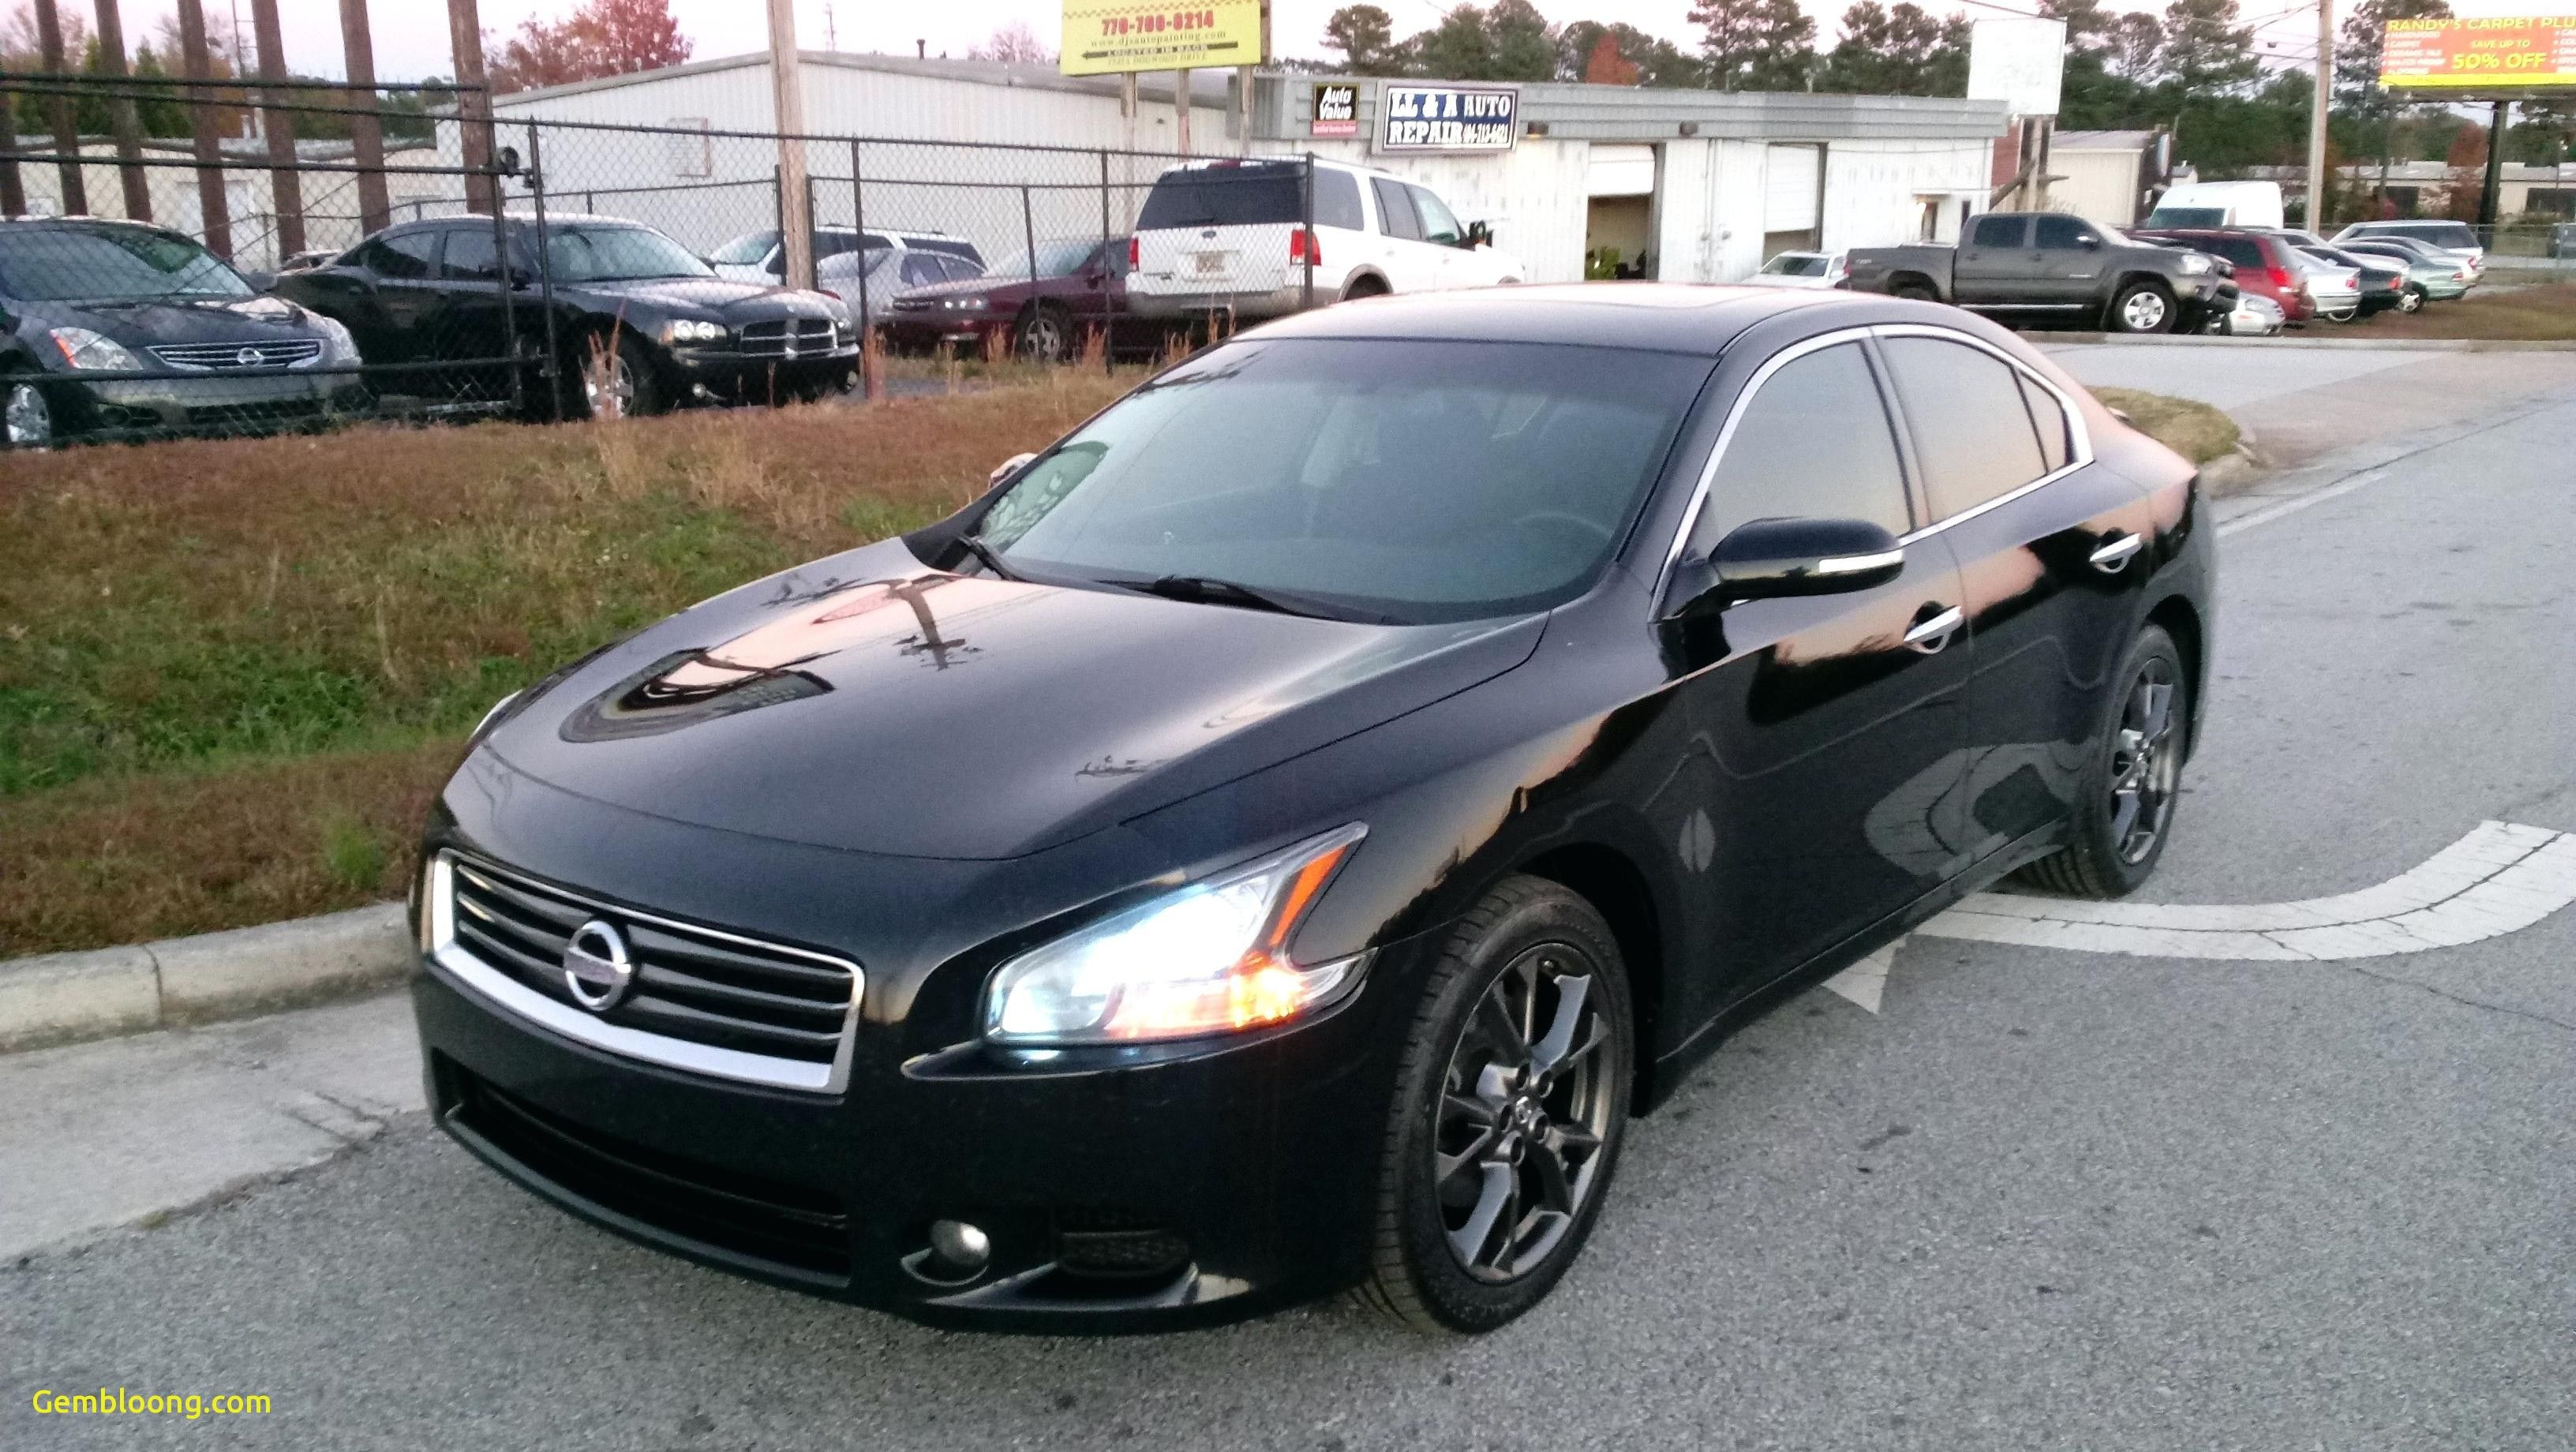 Elegant Cars for Sale Near Me Cheap Used